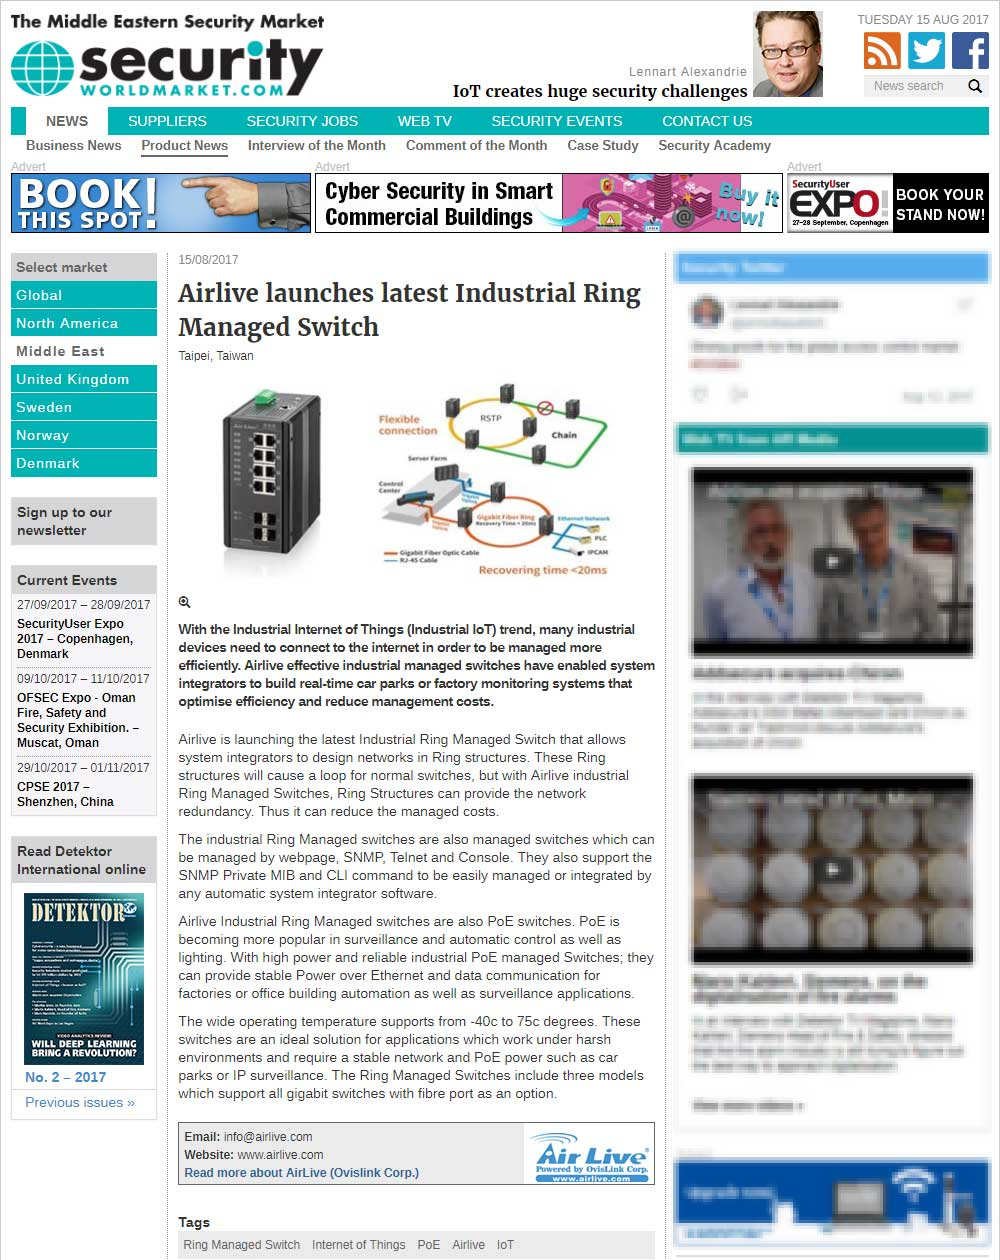 Airlive launches latest Industrial Ring Managed Switch (news from